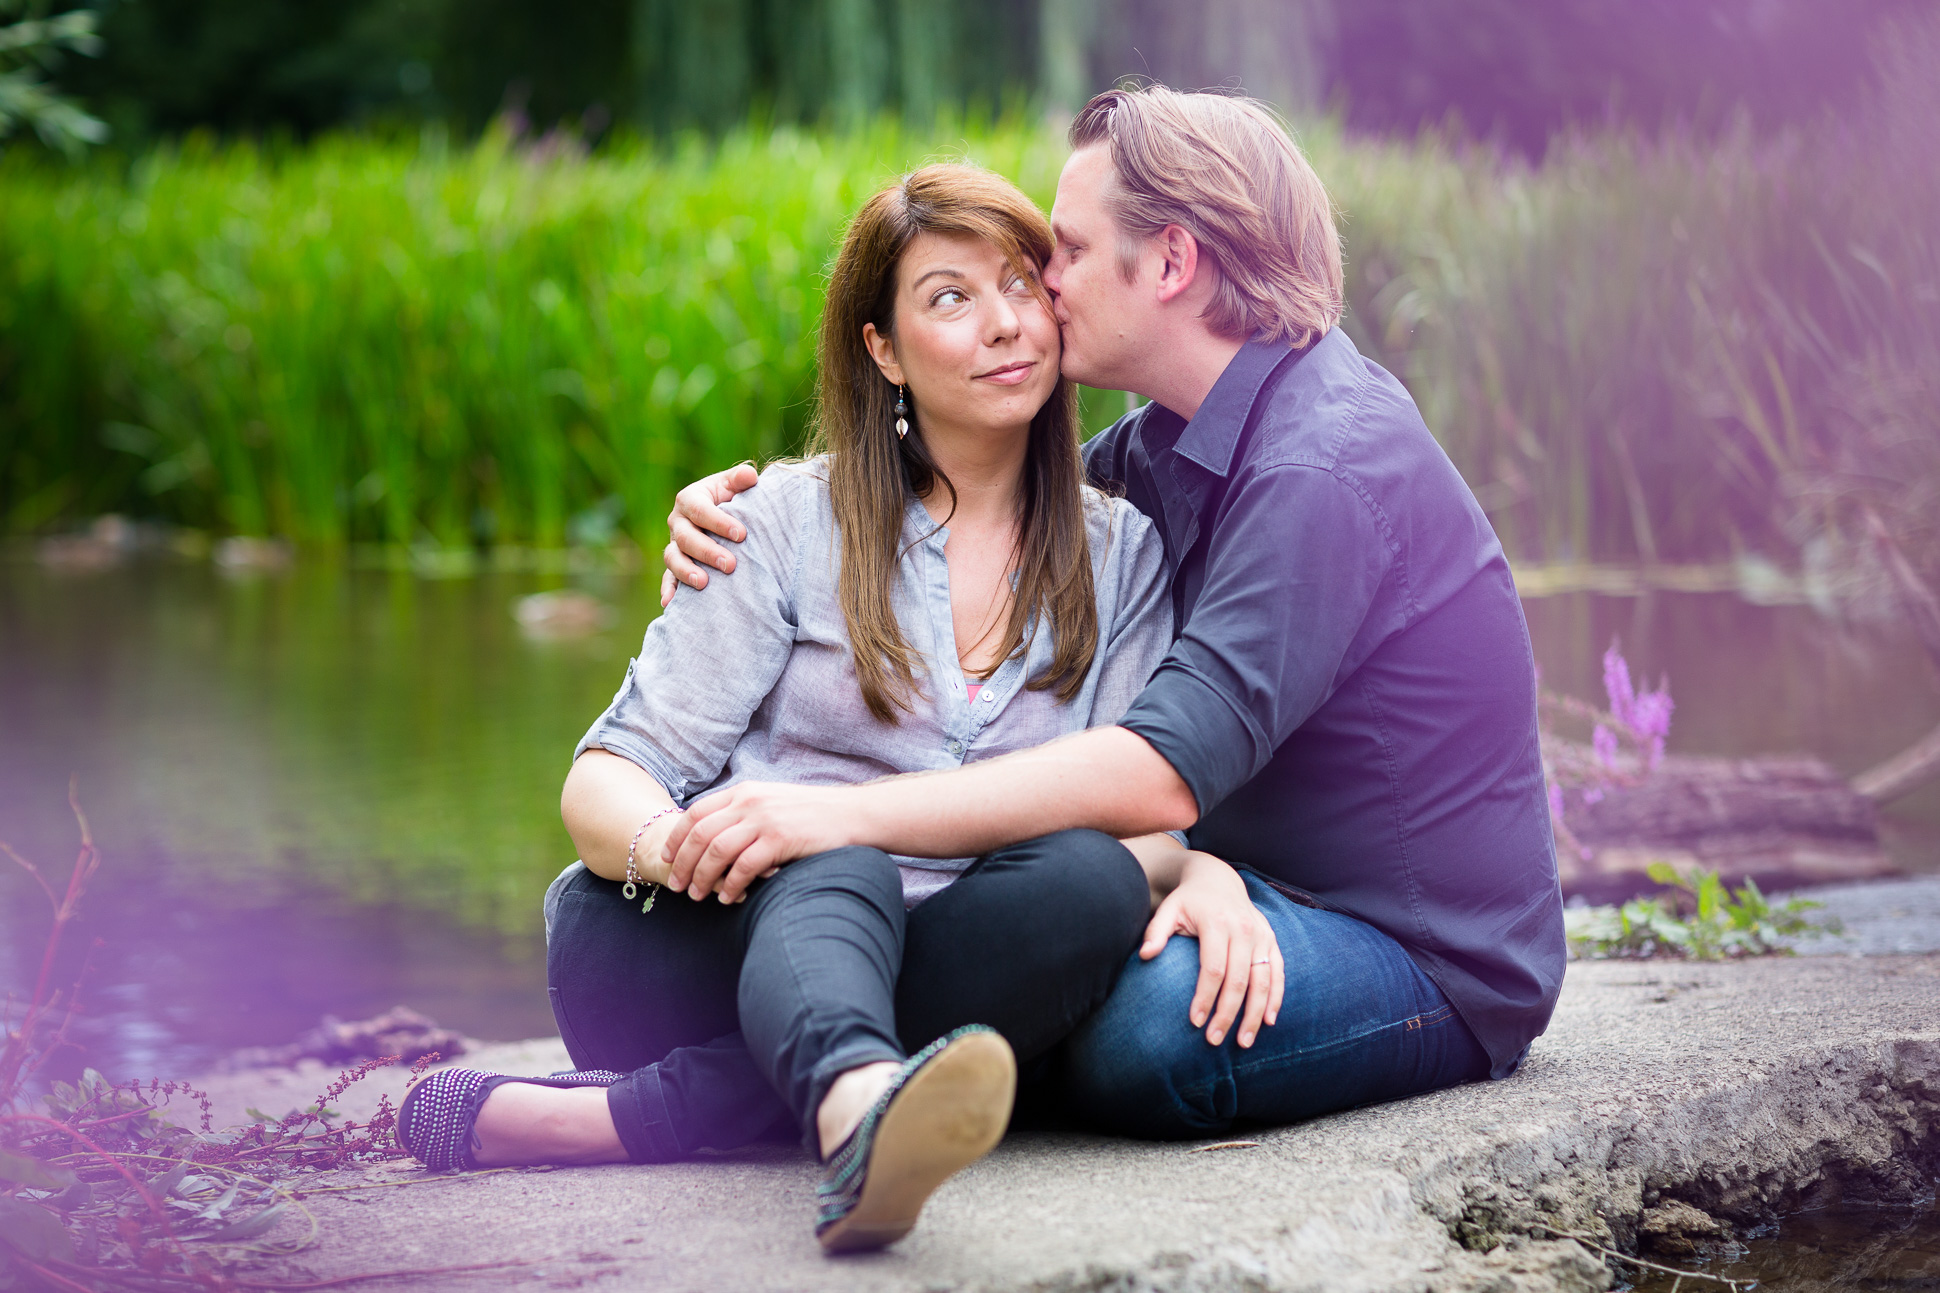 Engagement-Shooting Wetzlar | © Andreas Bender